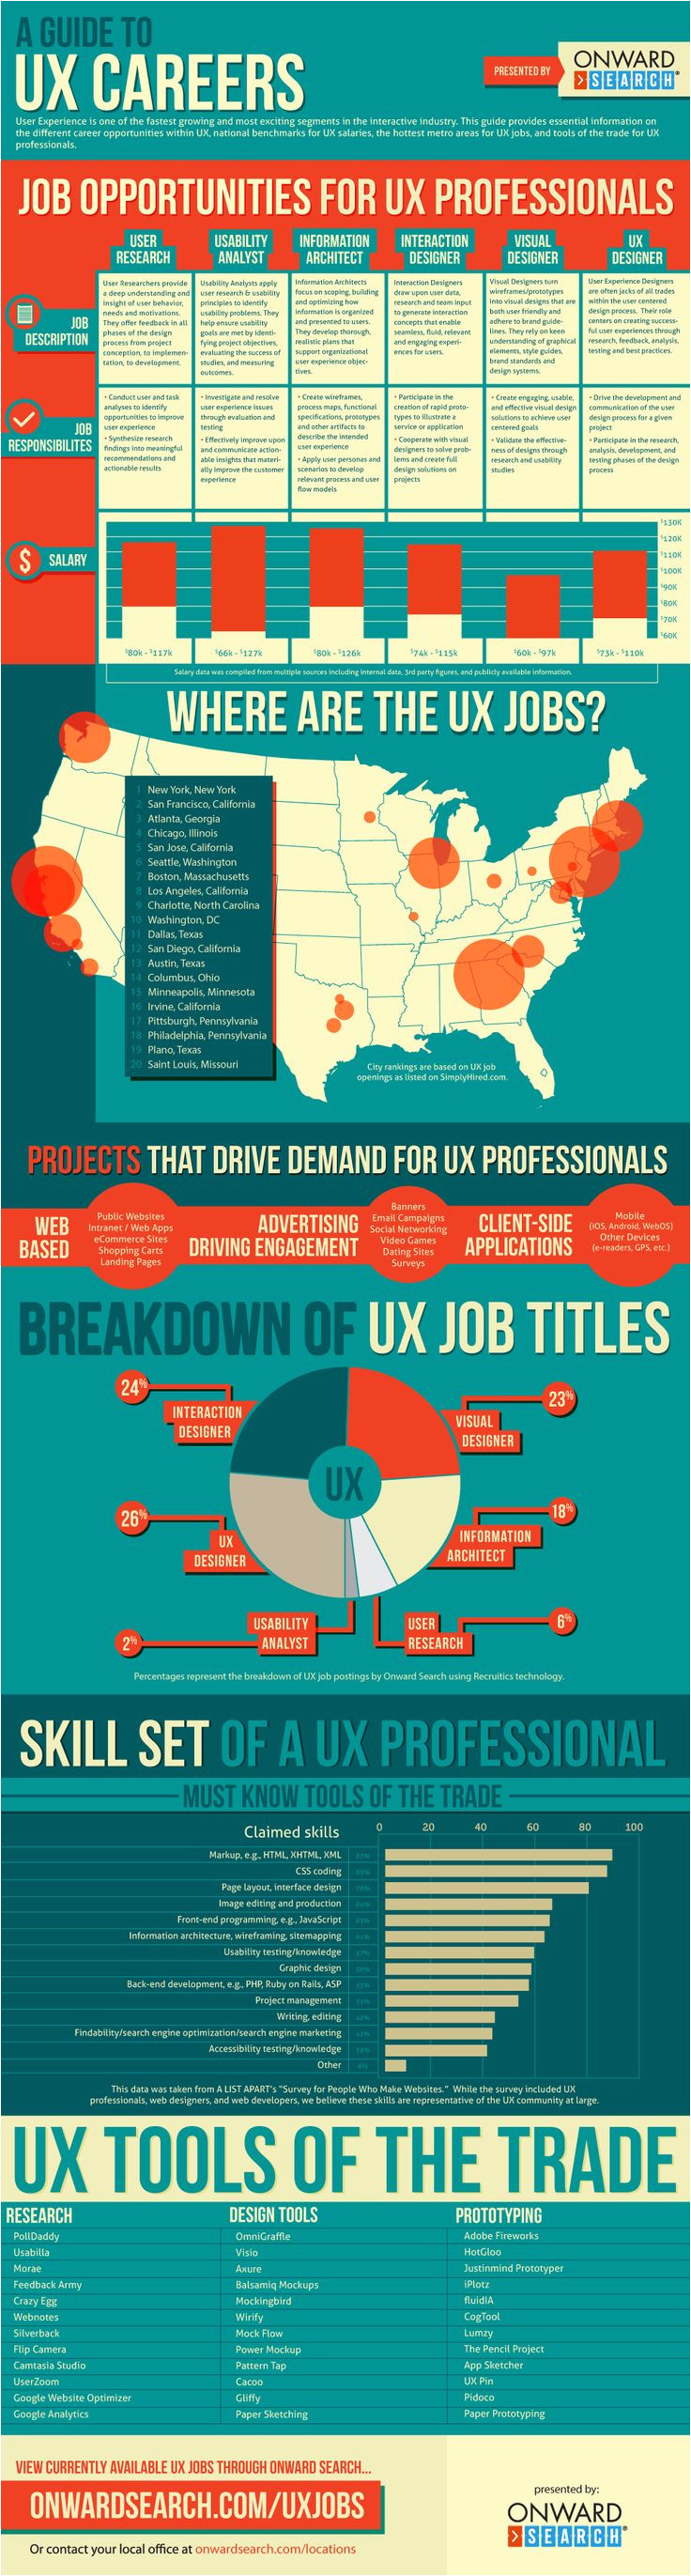 the ux careers guide shows user experience professionals salary top job markets job titles